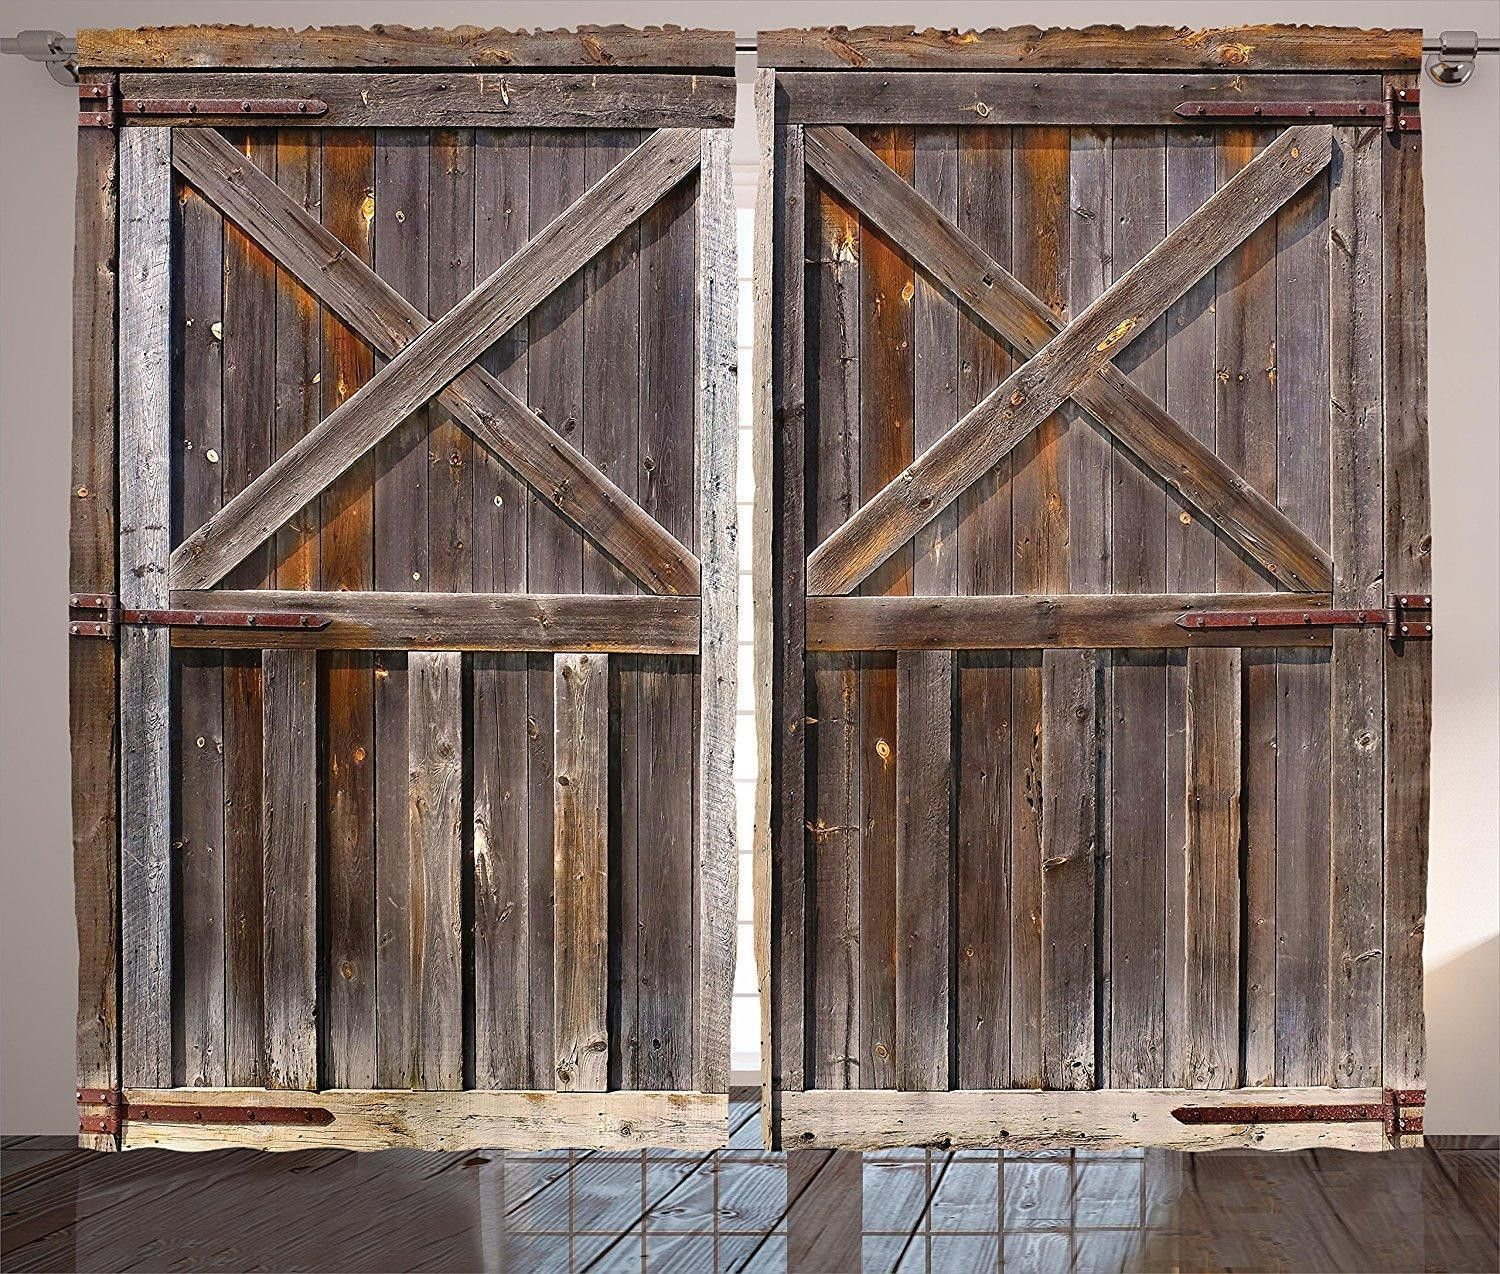 Rustic Farmhouse Old Wooden Barn Doors Curtains with ...